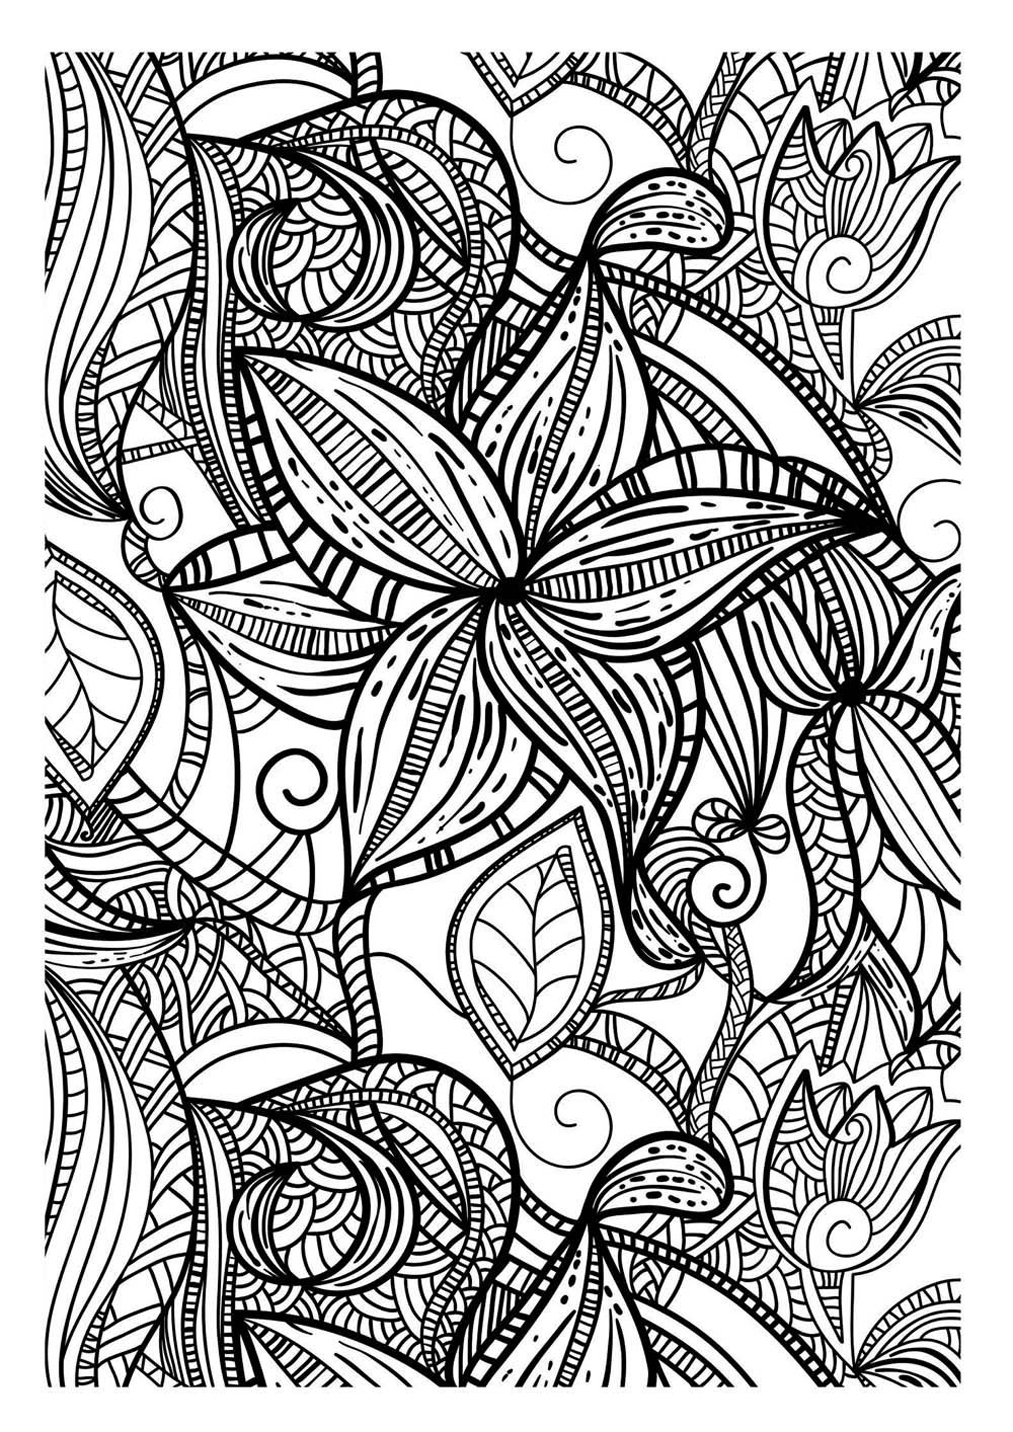 Abstract and elegant patterns inspired by flowers and leaves, with different thicknesses of lines.